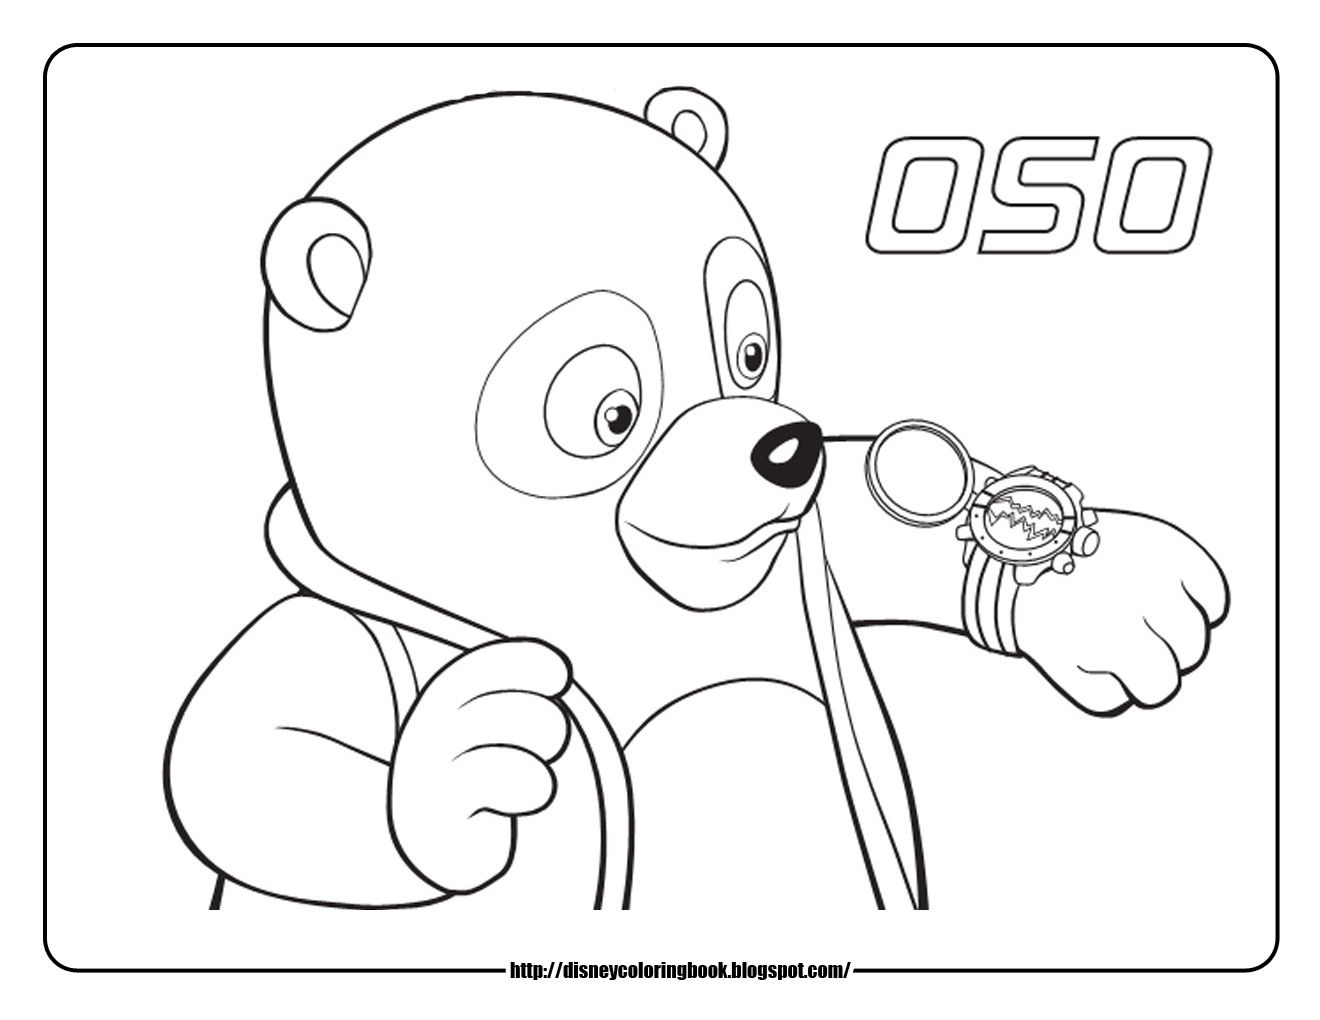 Special Agent Oso Coloring Pages Printables For Kids Disney Jr Characters Coloring Pages